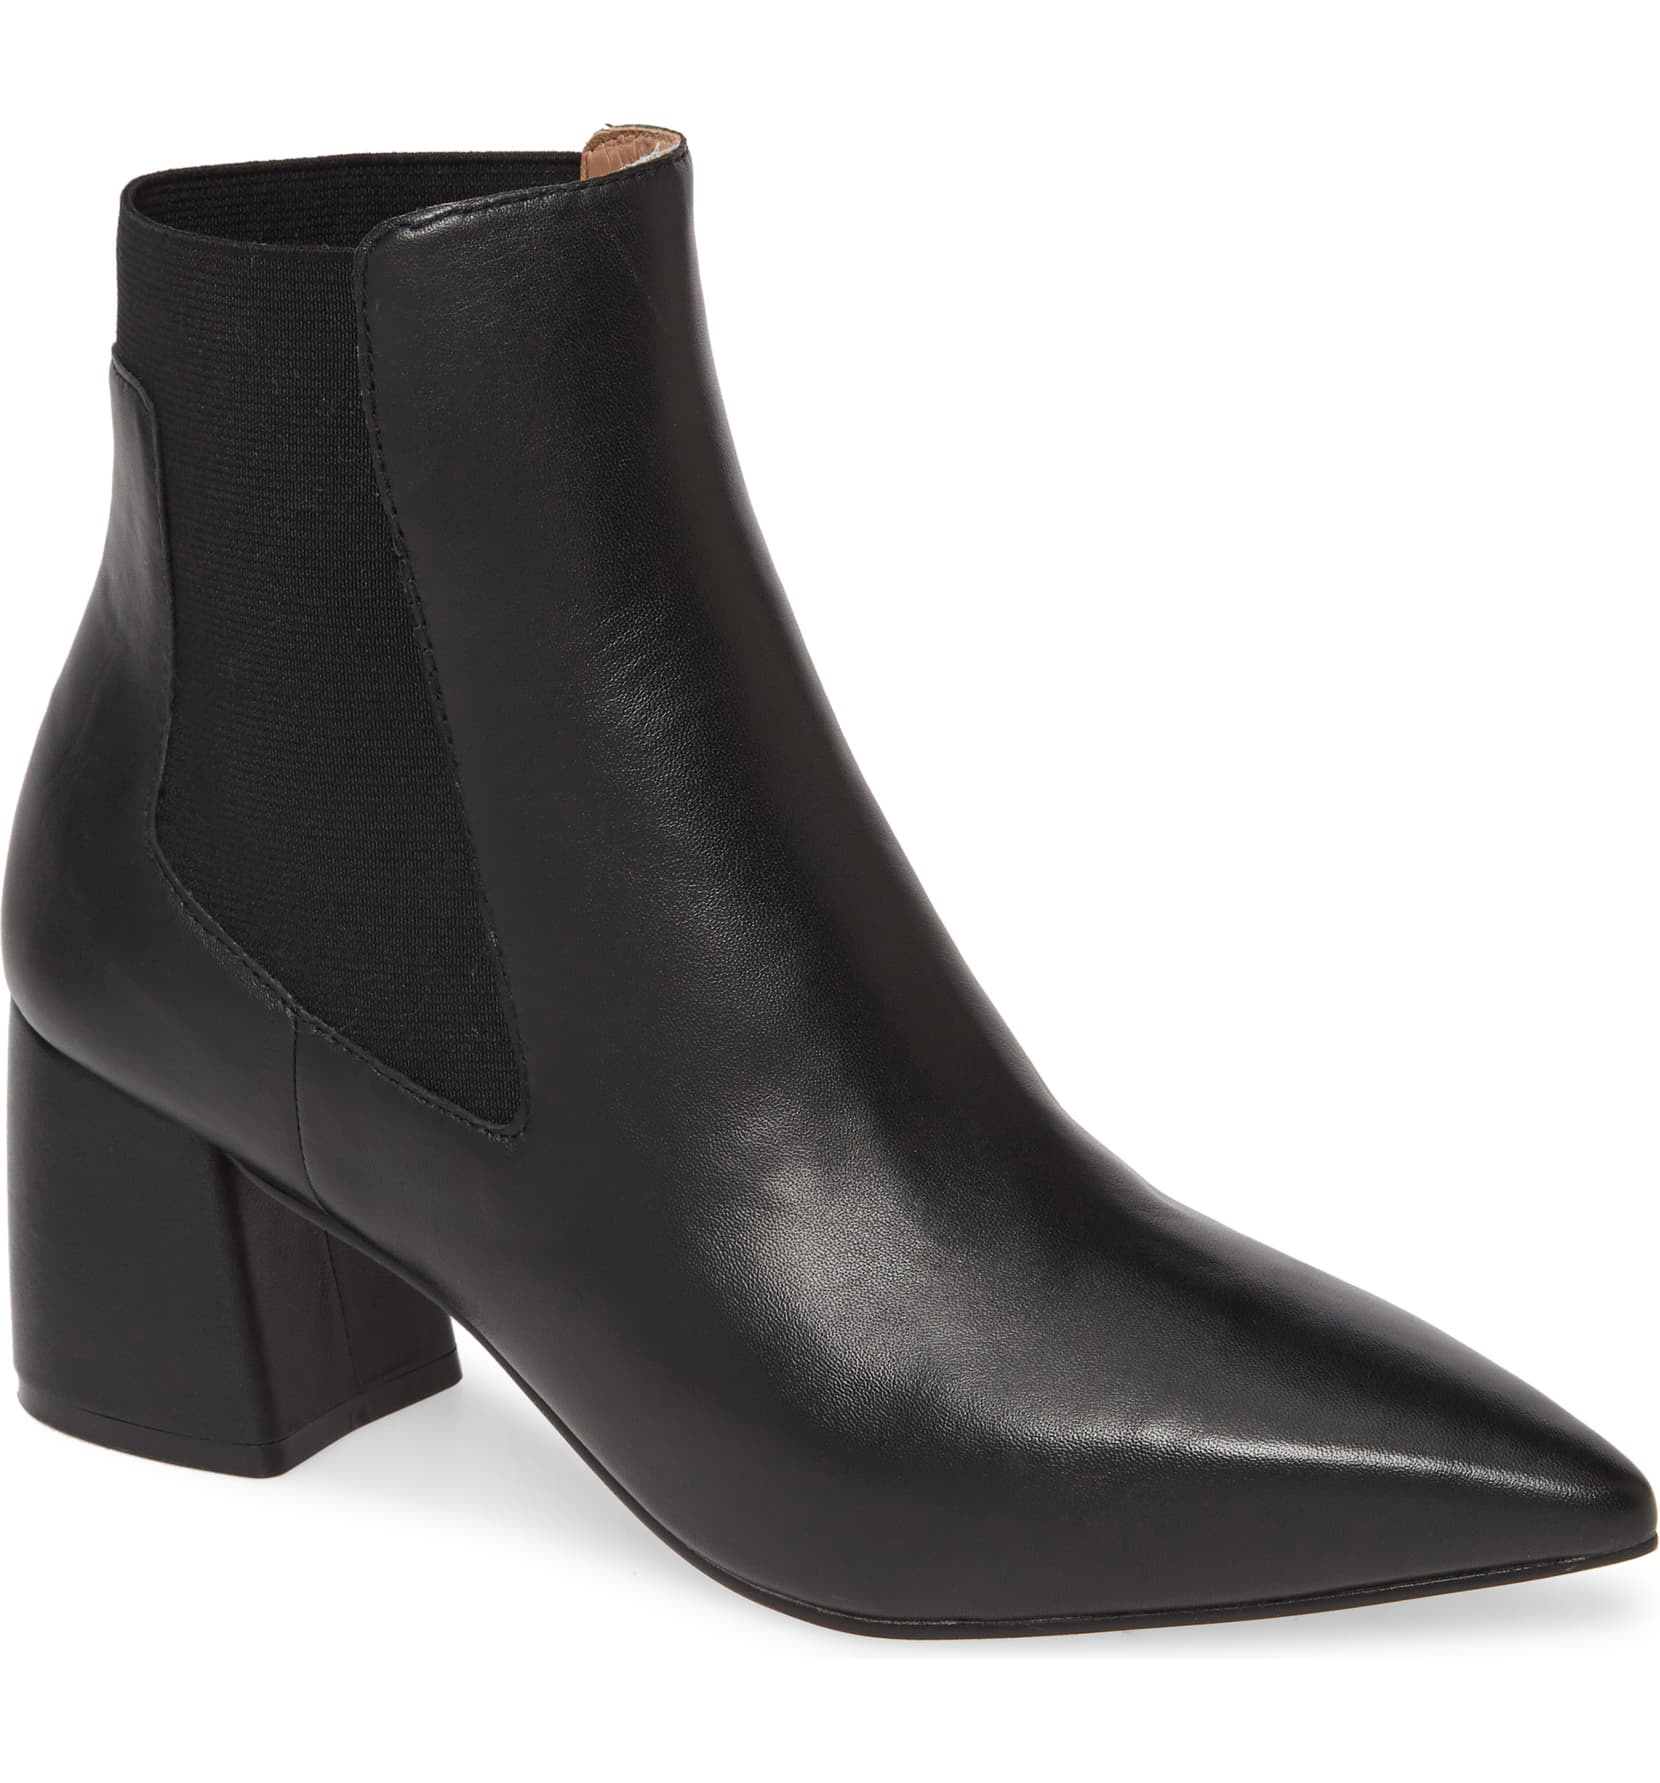 Sienna Chelsea Boot LINEA PAOLO